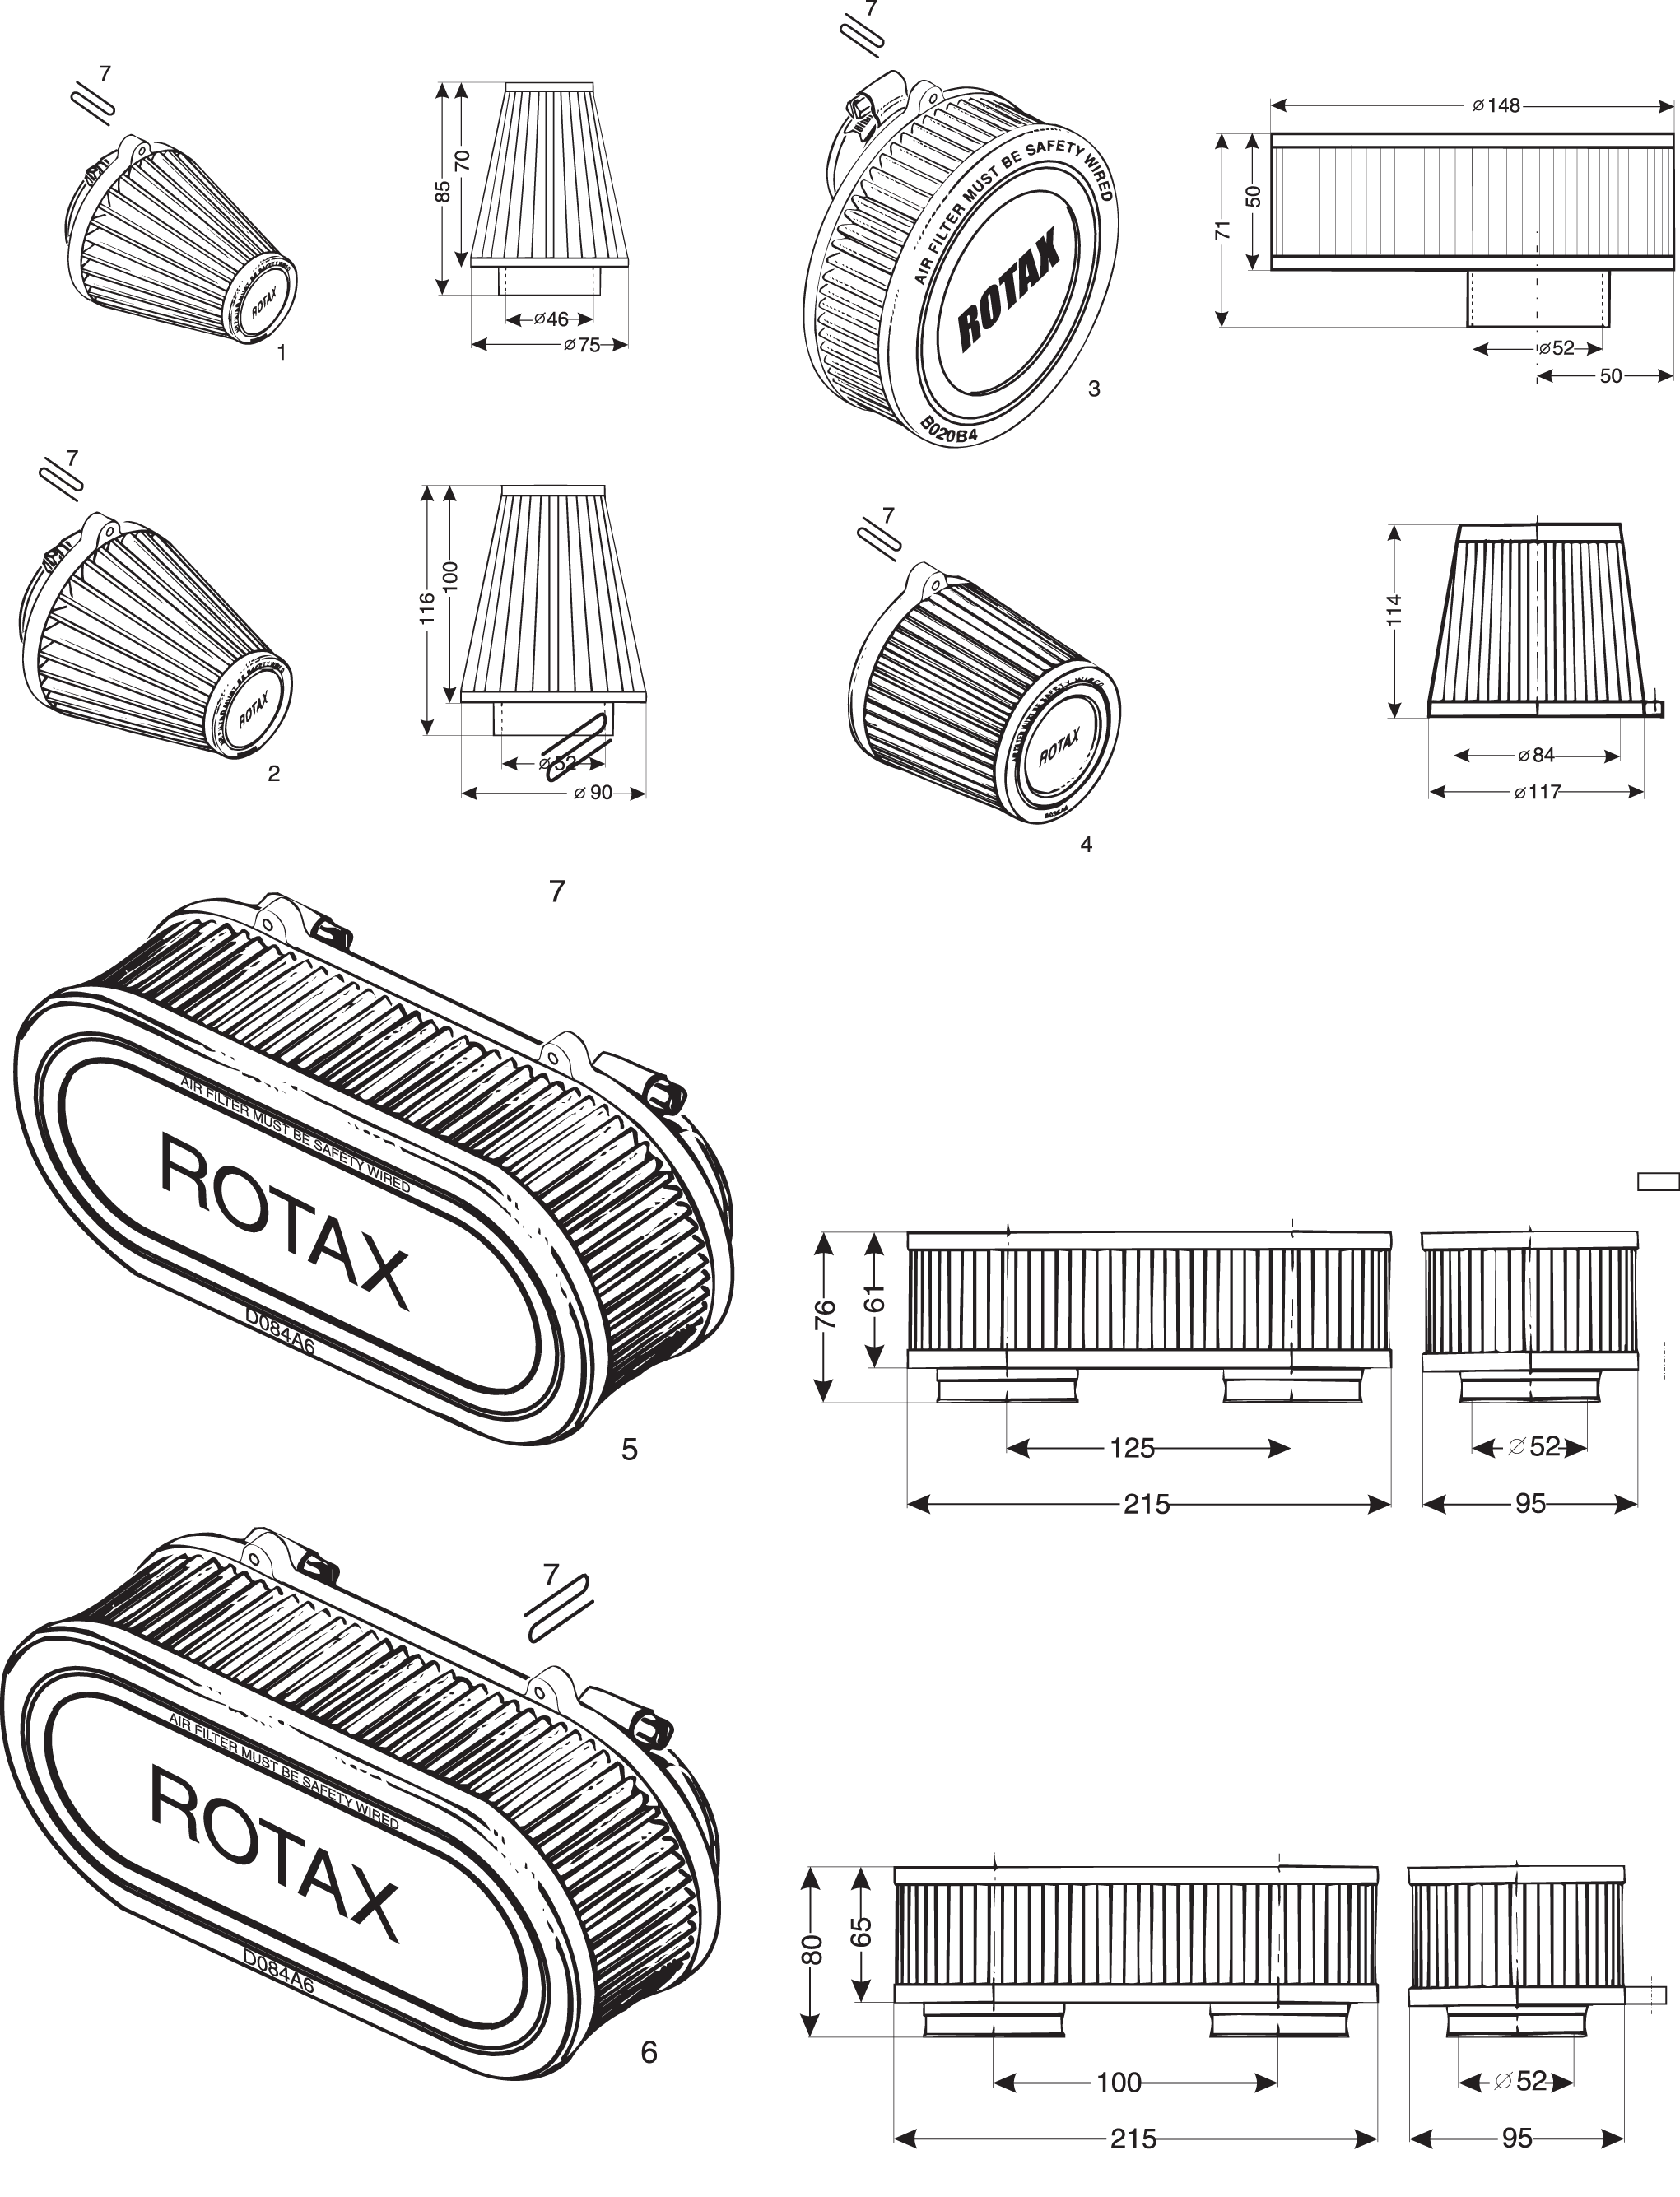 rotax air filters